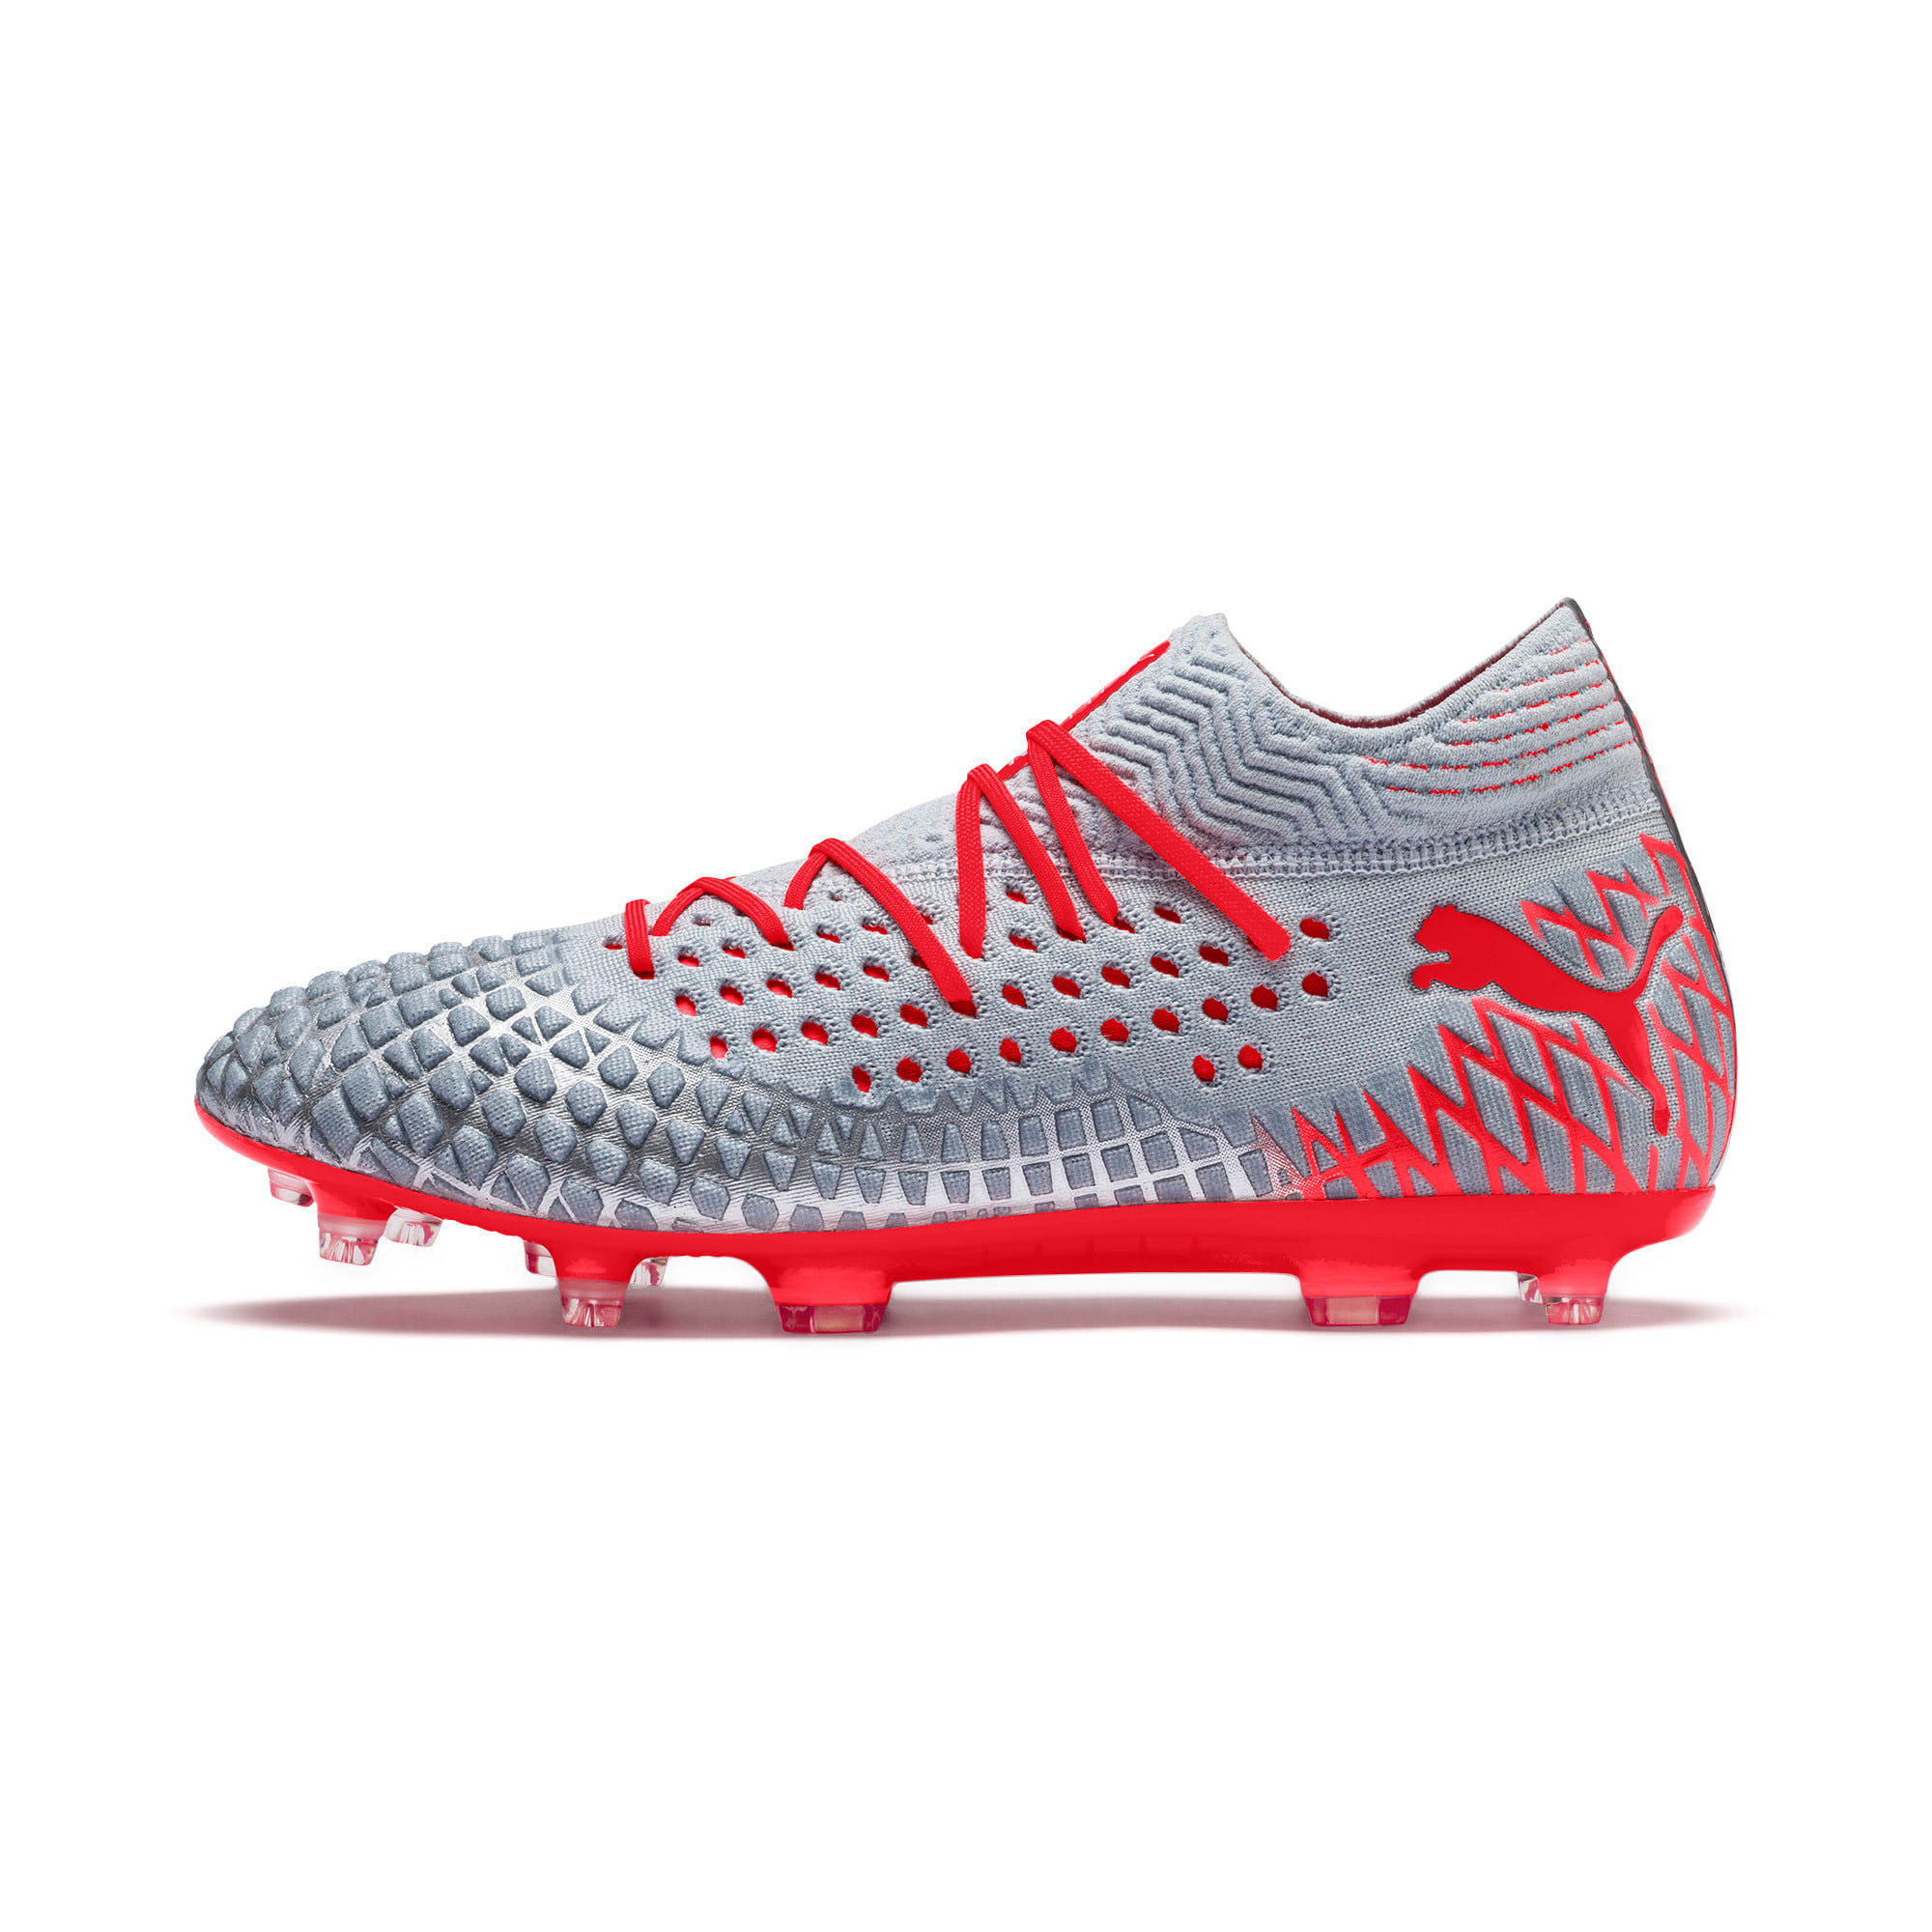 Thumbnail 1 of FUTURE 4.1 NETFIT FG/AG Men's Soccer Cleats, Blue-Nrgy Red-High Risk Red, medium